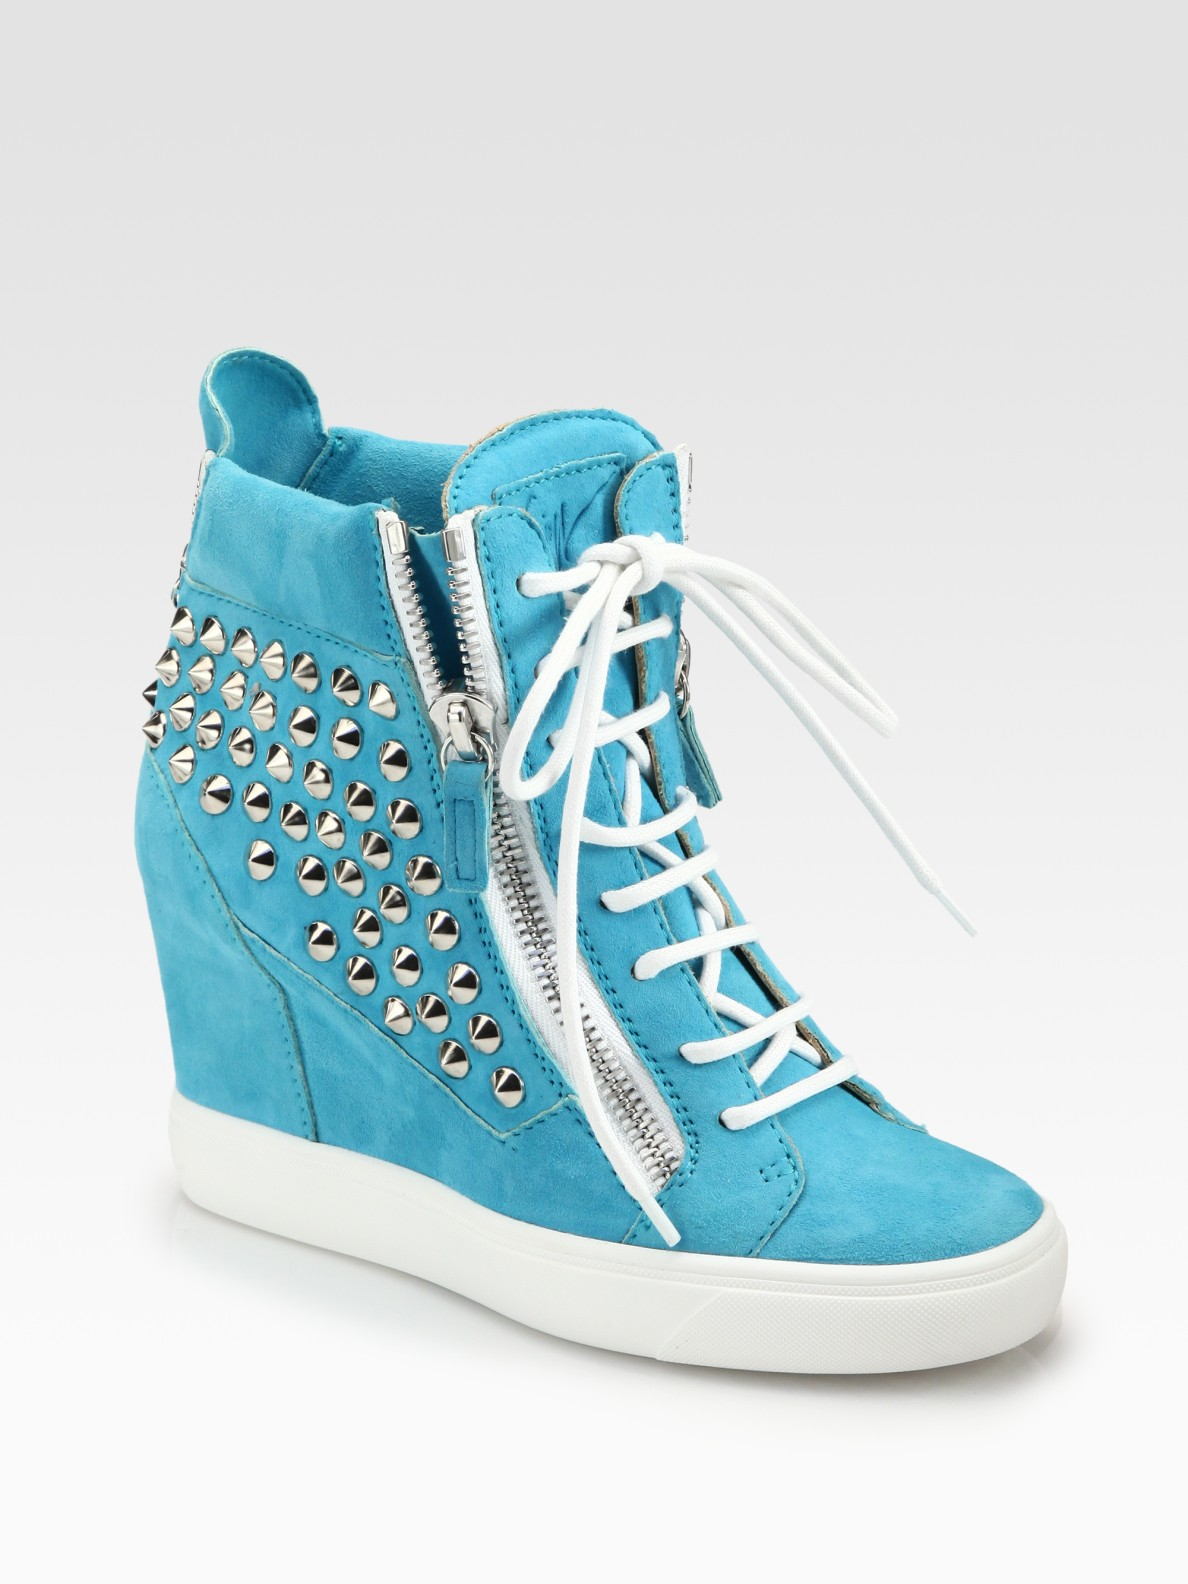 Giuseppe Zanotti Spike Suede Wedge Sneakers In Blue Lyst